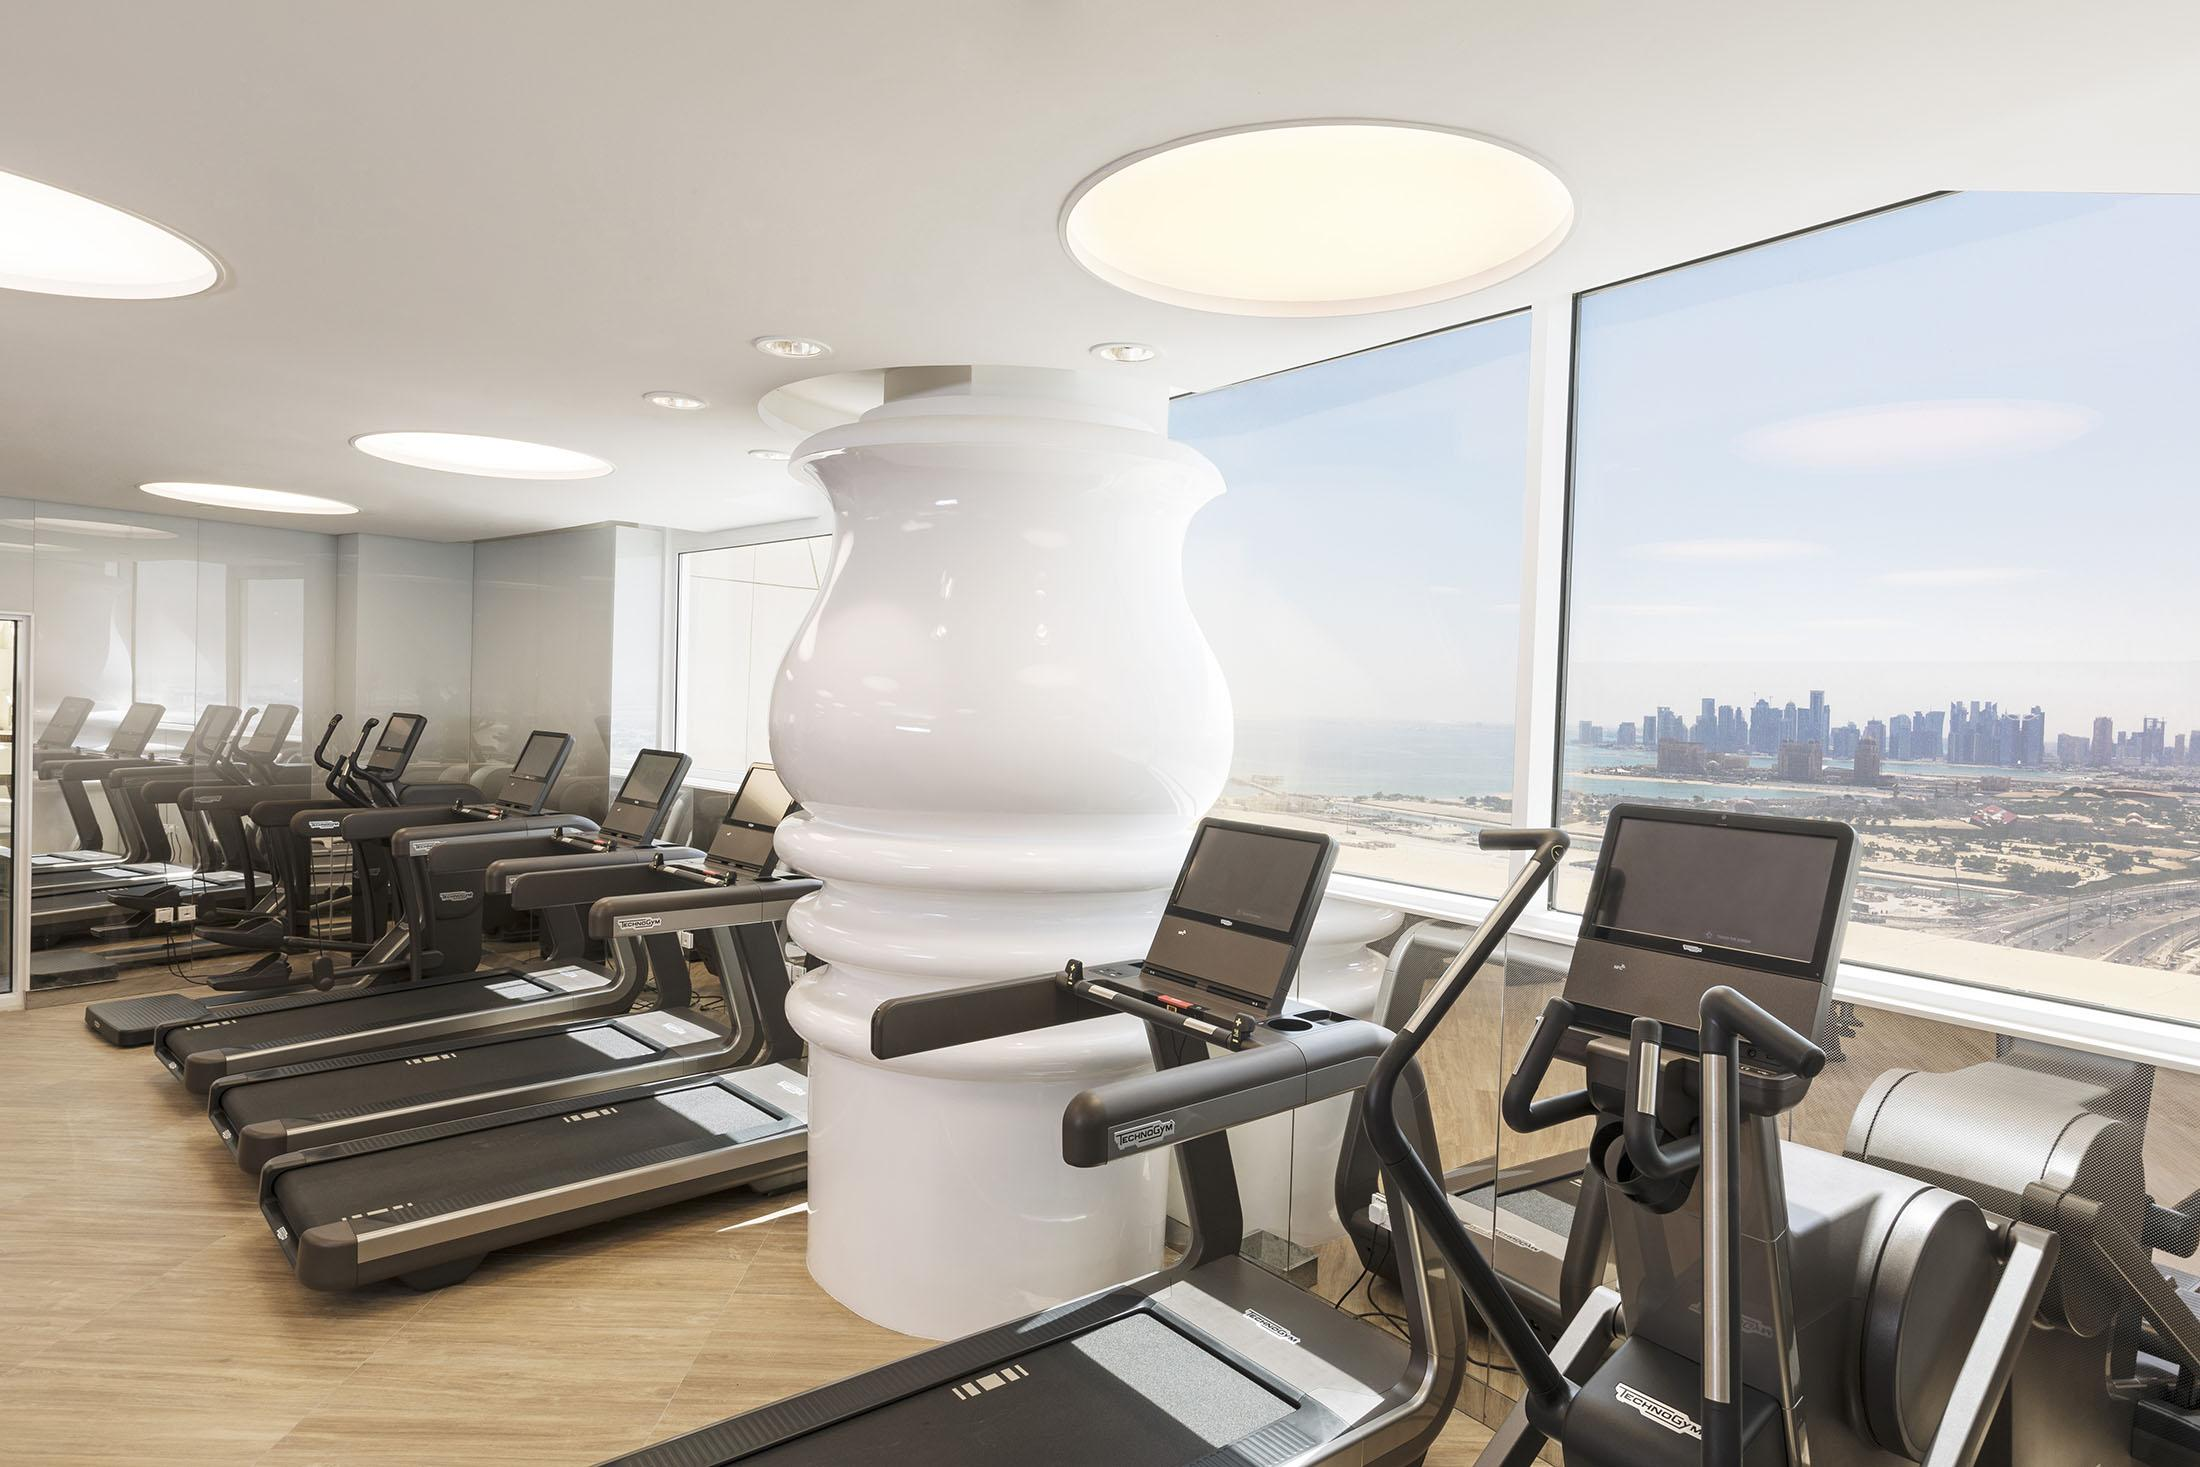 Mondrian Doha Fitness Center